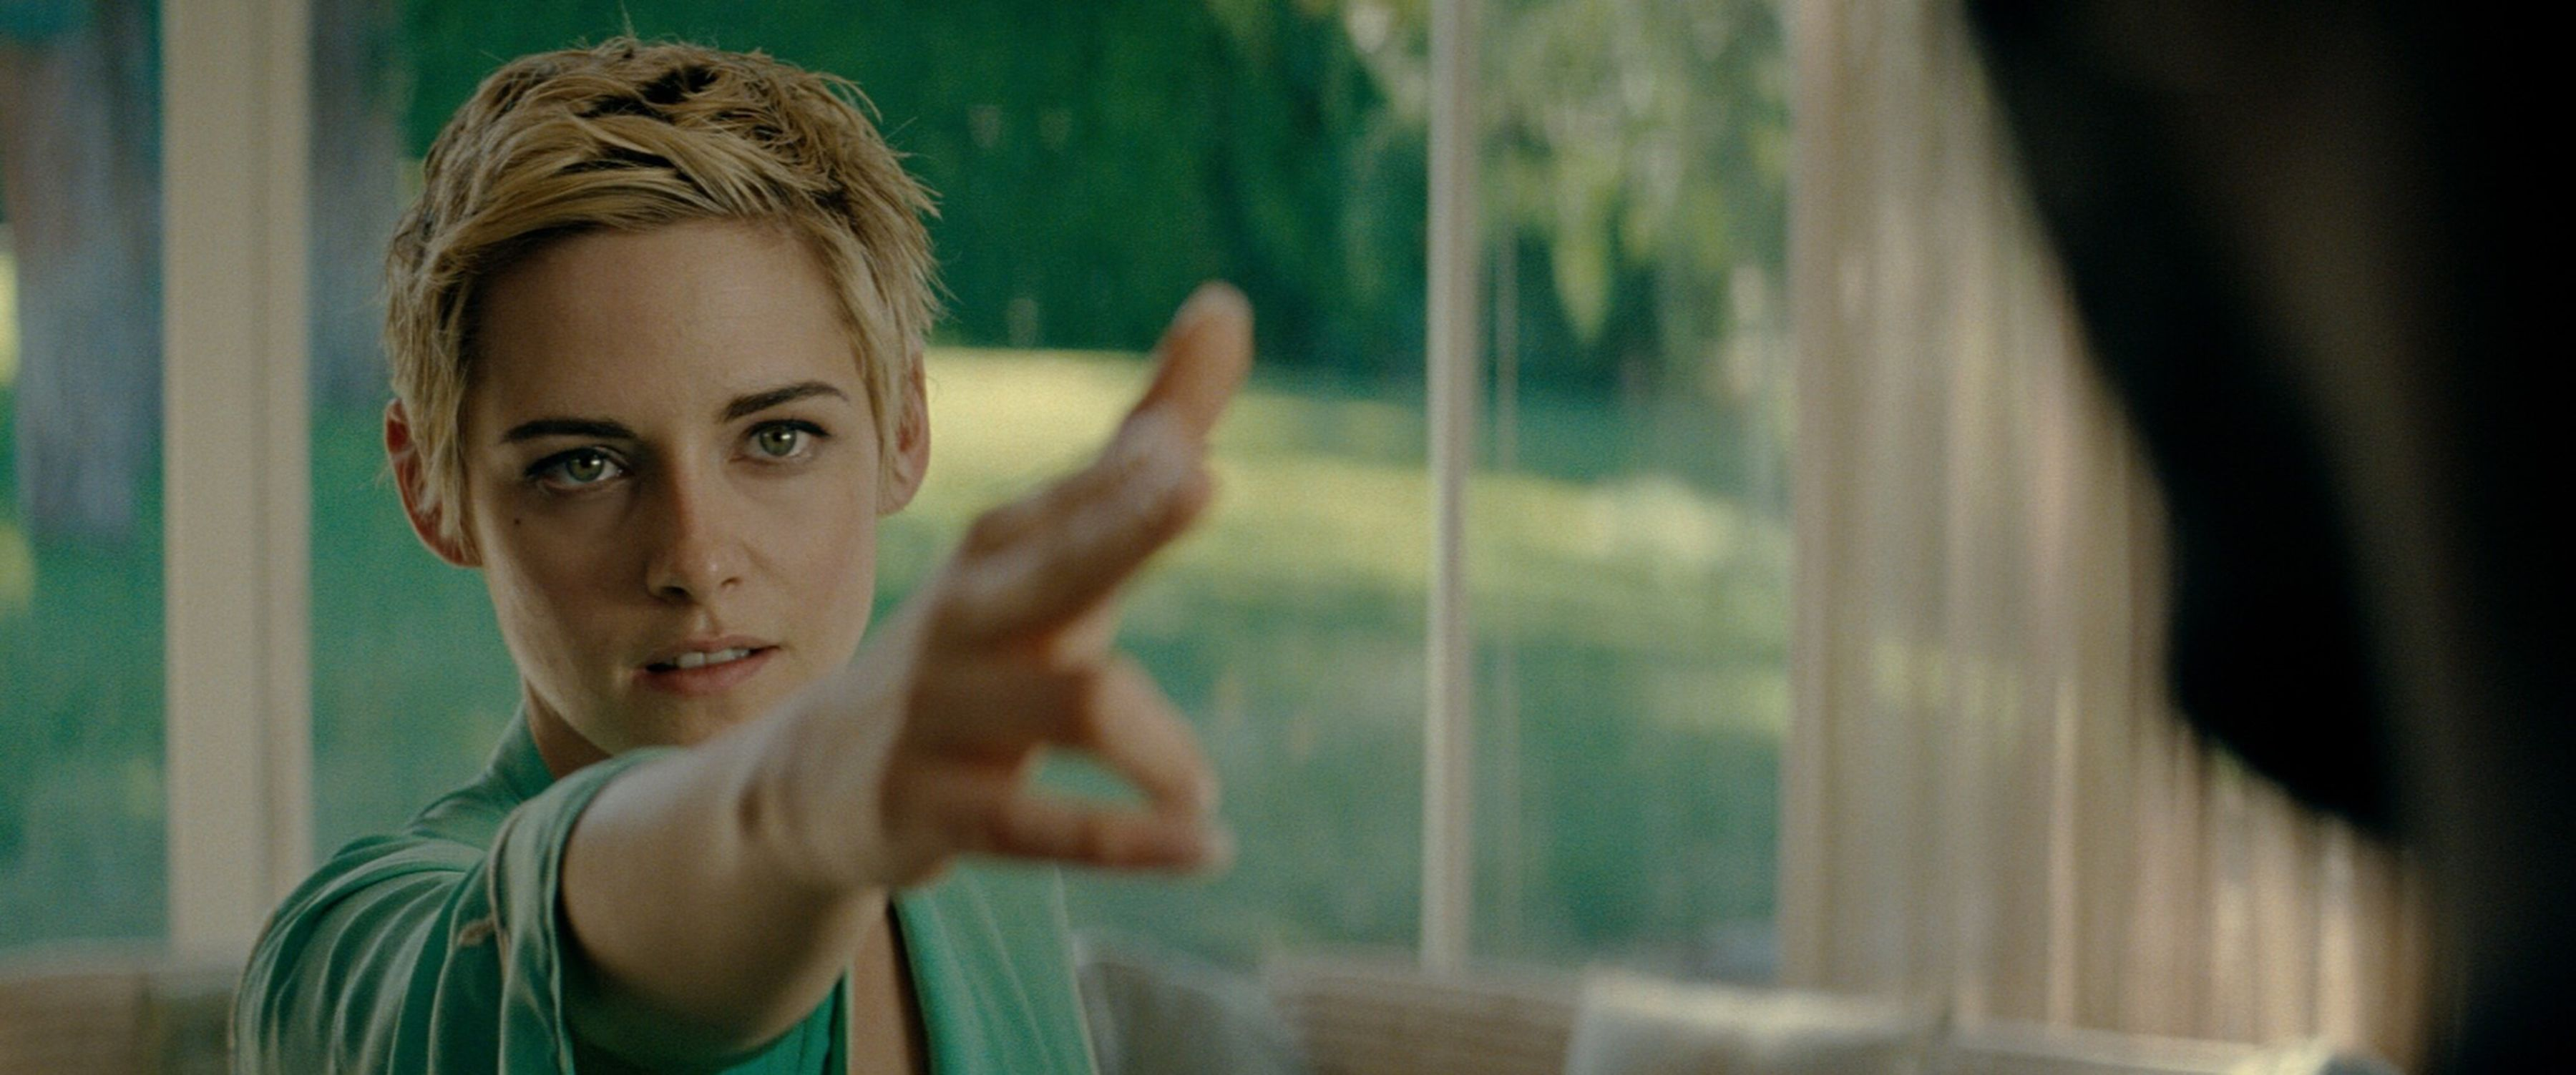 Seberg The Real Life Story Behind Kristen Stewart S New Film